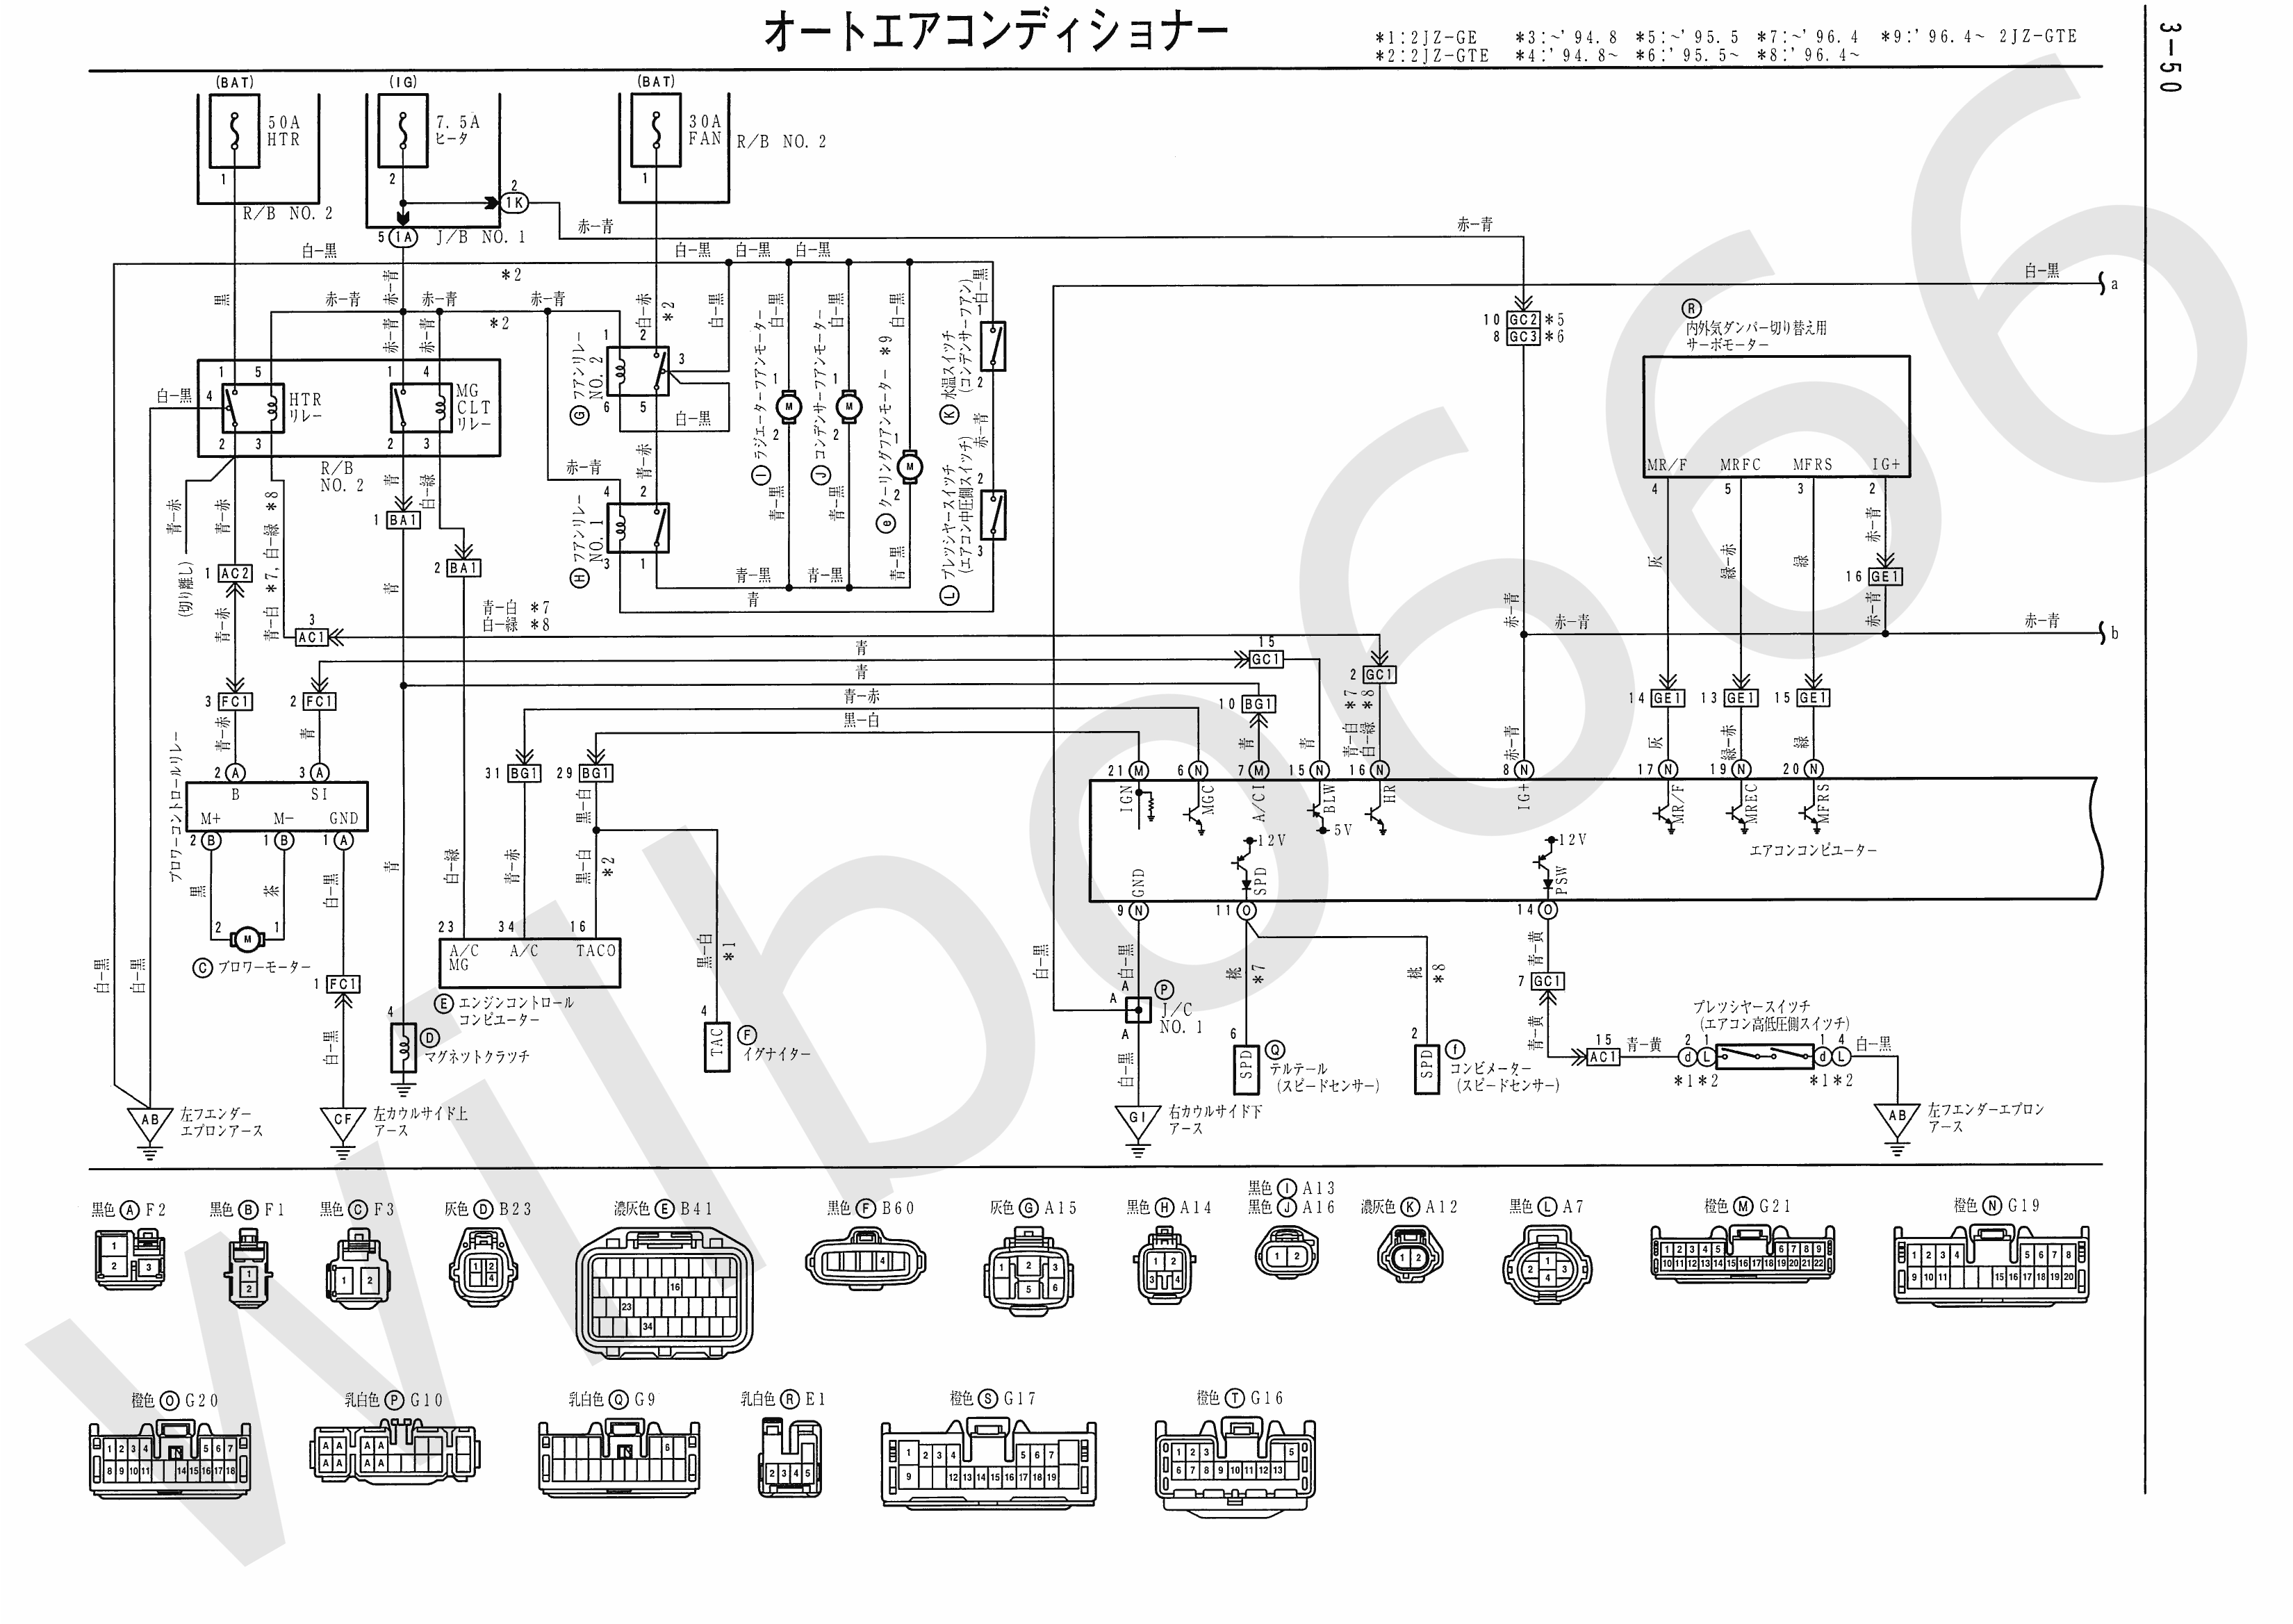 Wilbo666 2jz Ge Jza80 Supra Engine Wiring Lexus Gs300 Electrical Diagram Toyota Diagrams